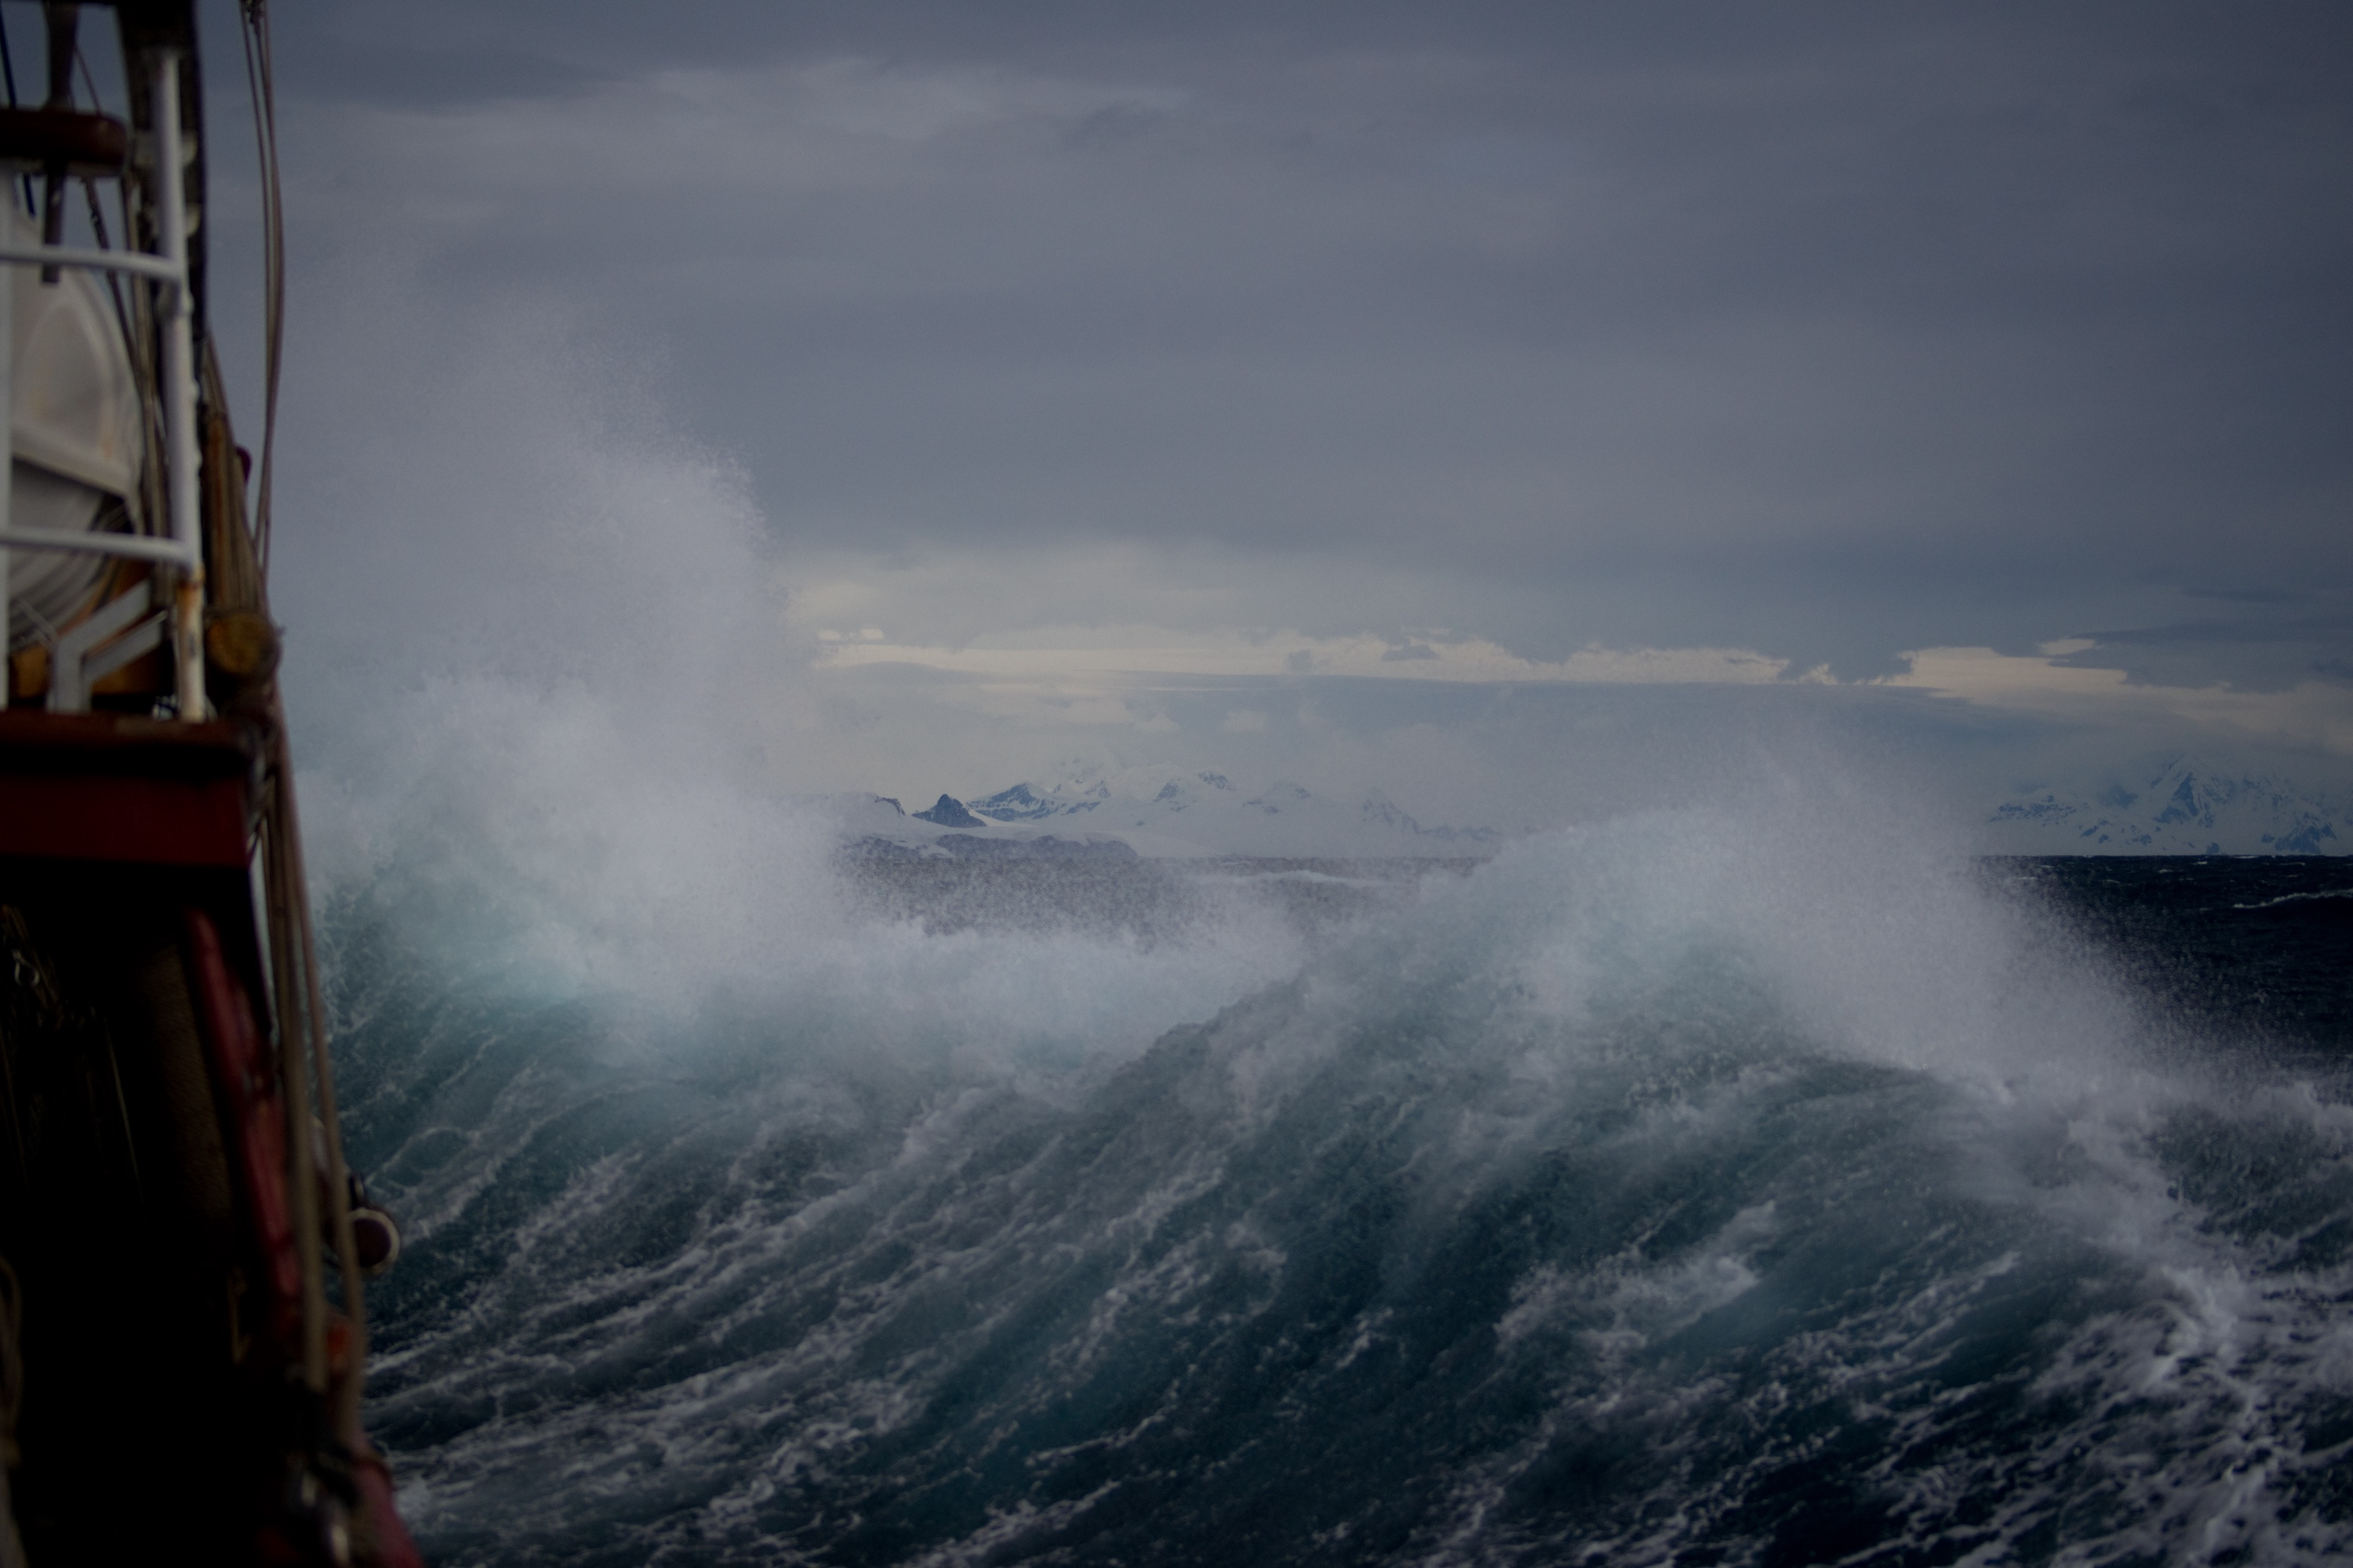 Ship in storm at sea, high waves and rough waters